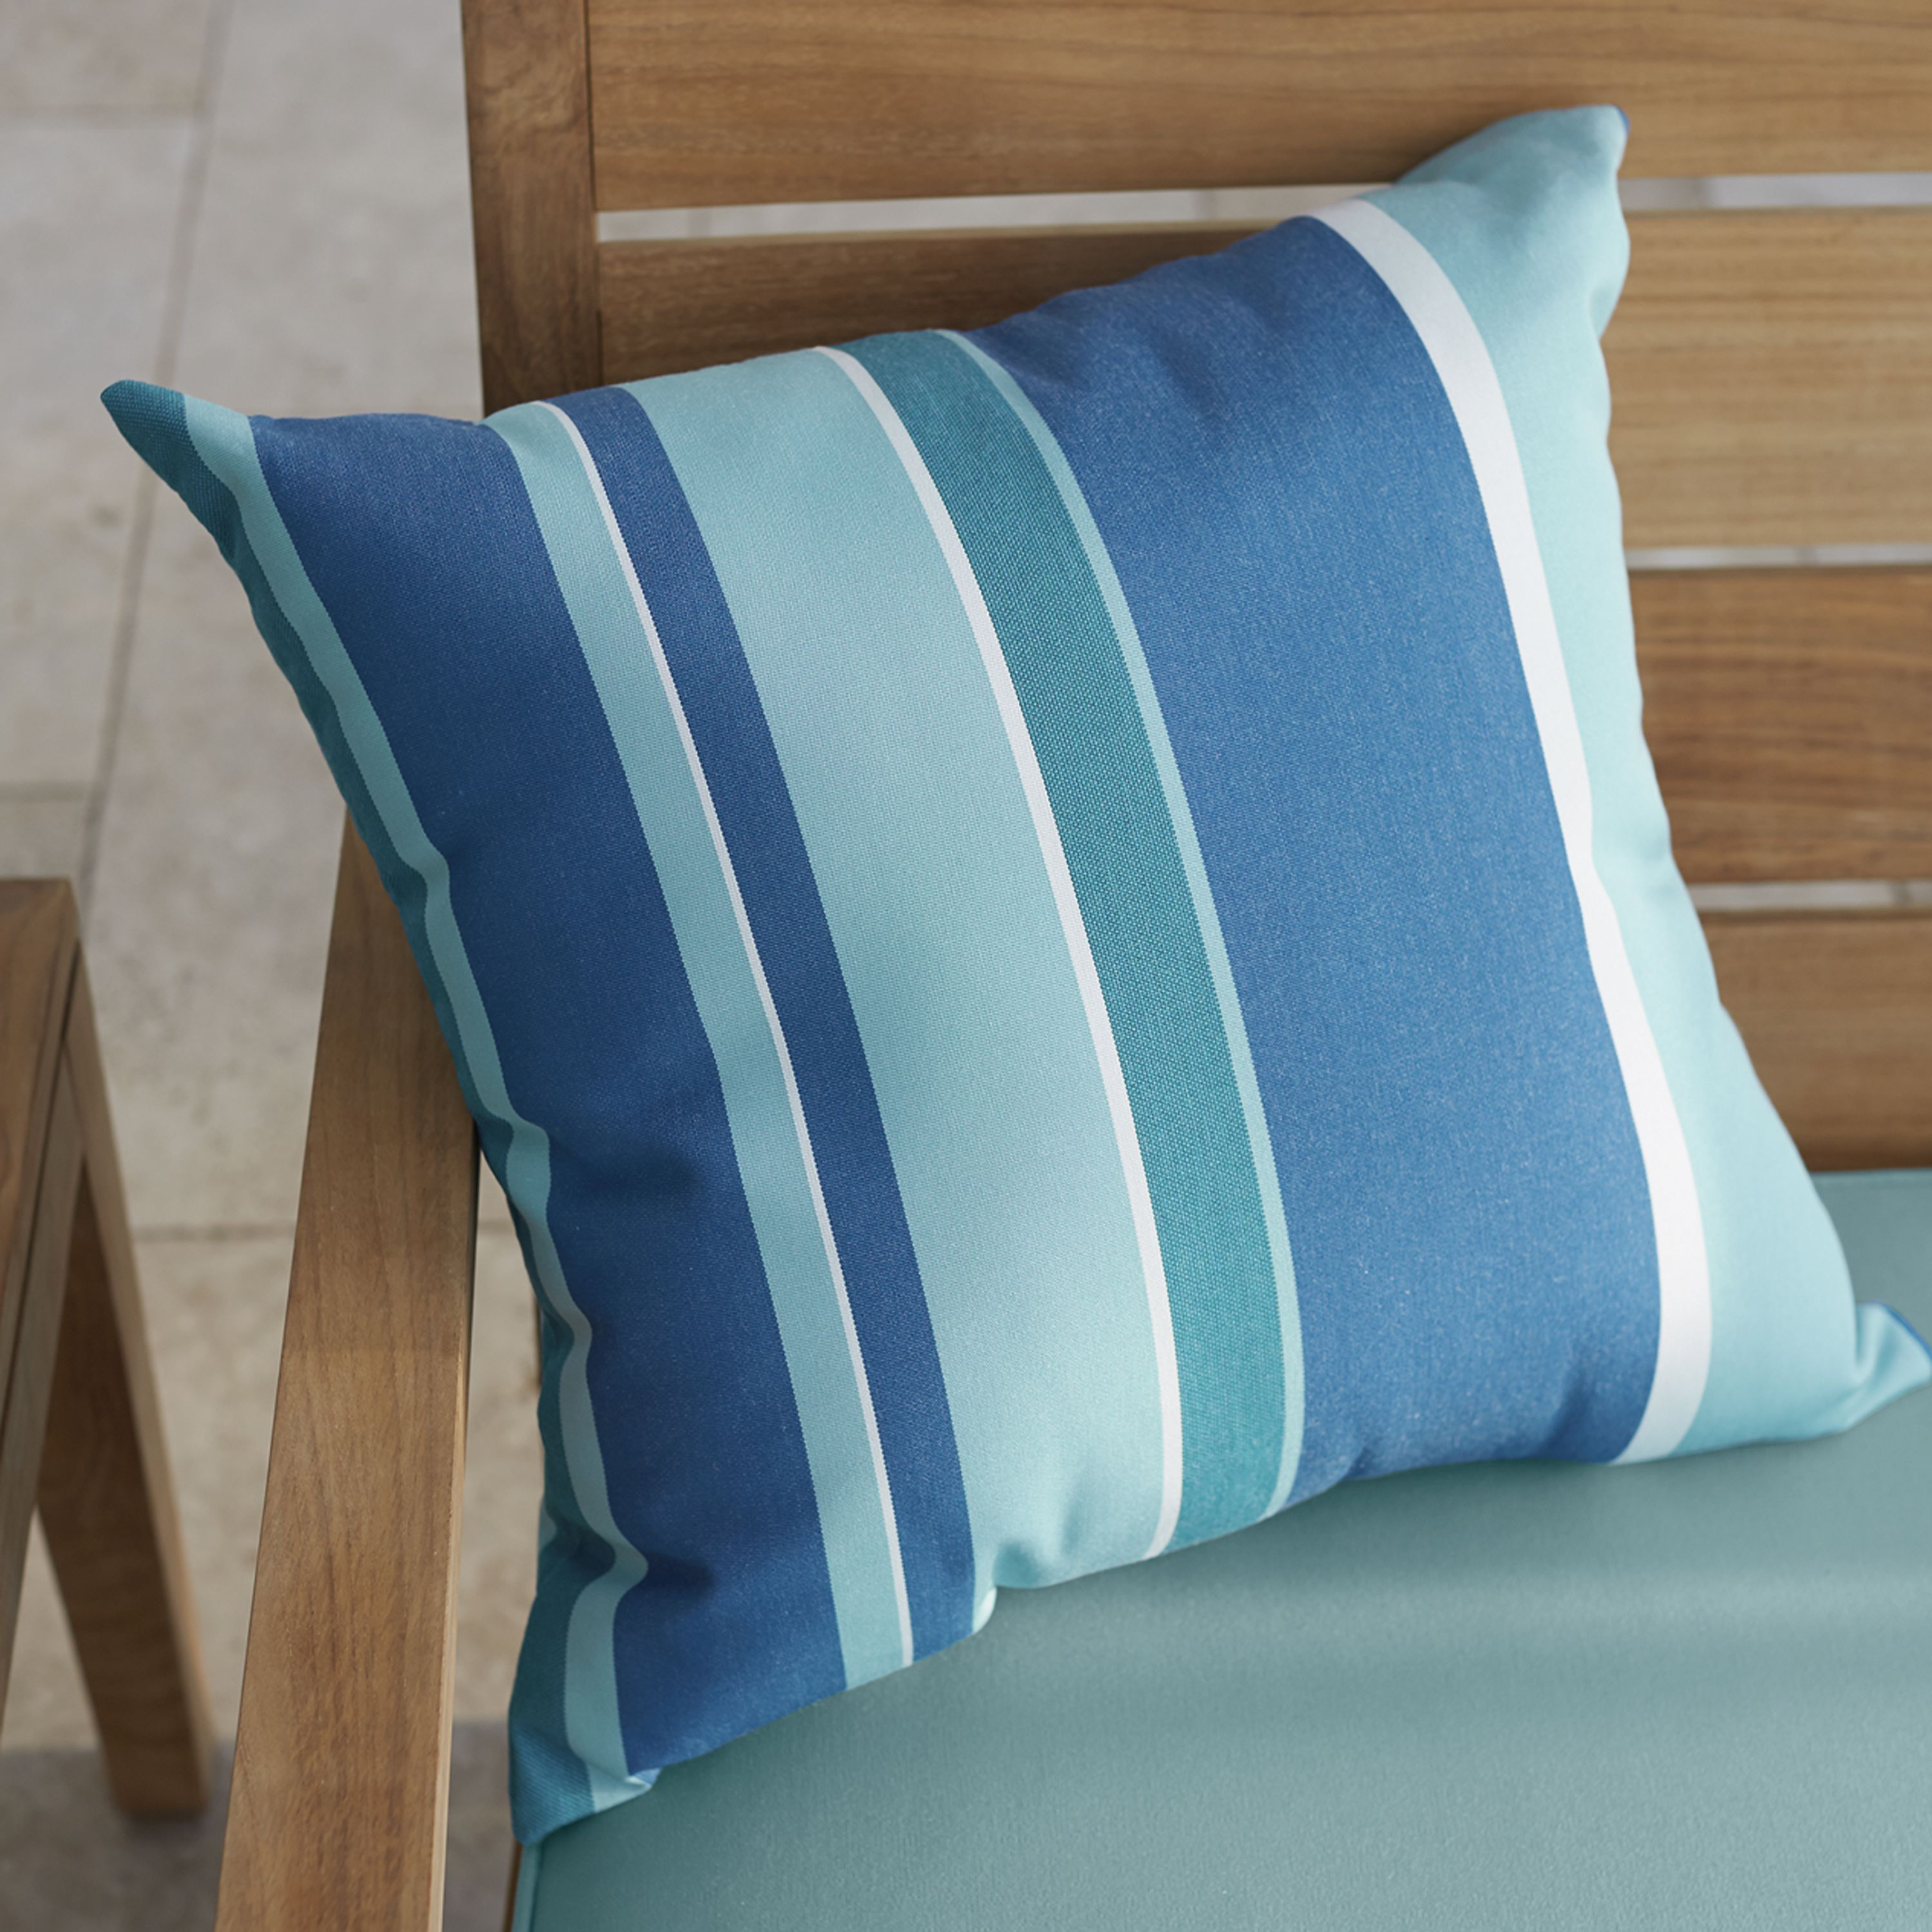 Thin and thick stripes of sea-inspired blues add a splash of color to the outdoor sofa or lounge chair. Made of Sunbrella acrylic, the pillow is weather- and fade-resistant.